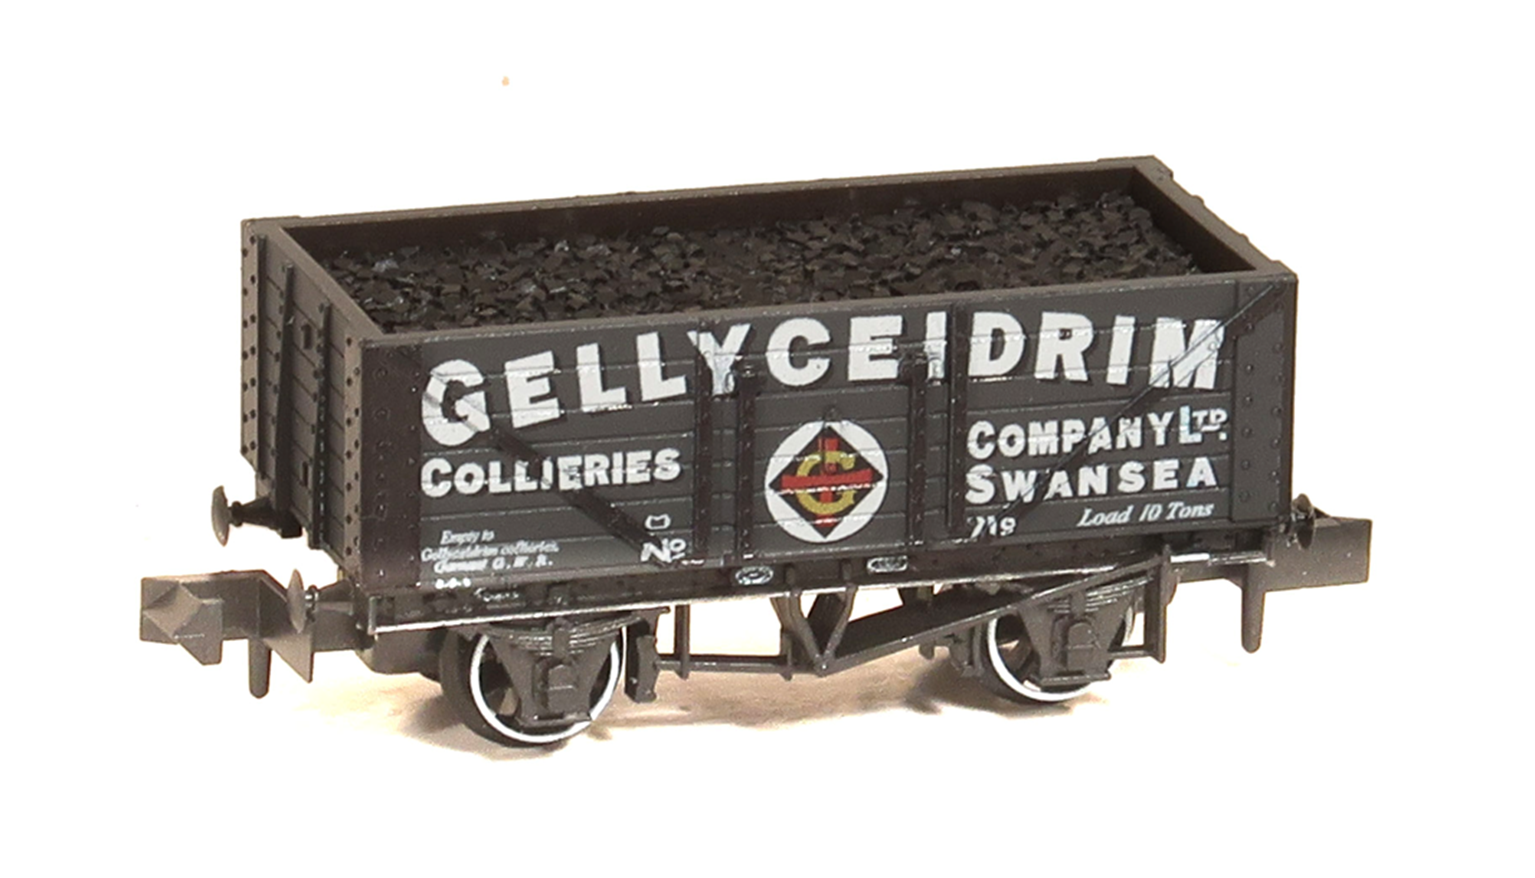 Gellyceidrim Collieries Co Ltd 7 Plank Wagon